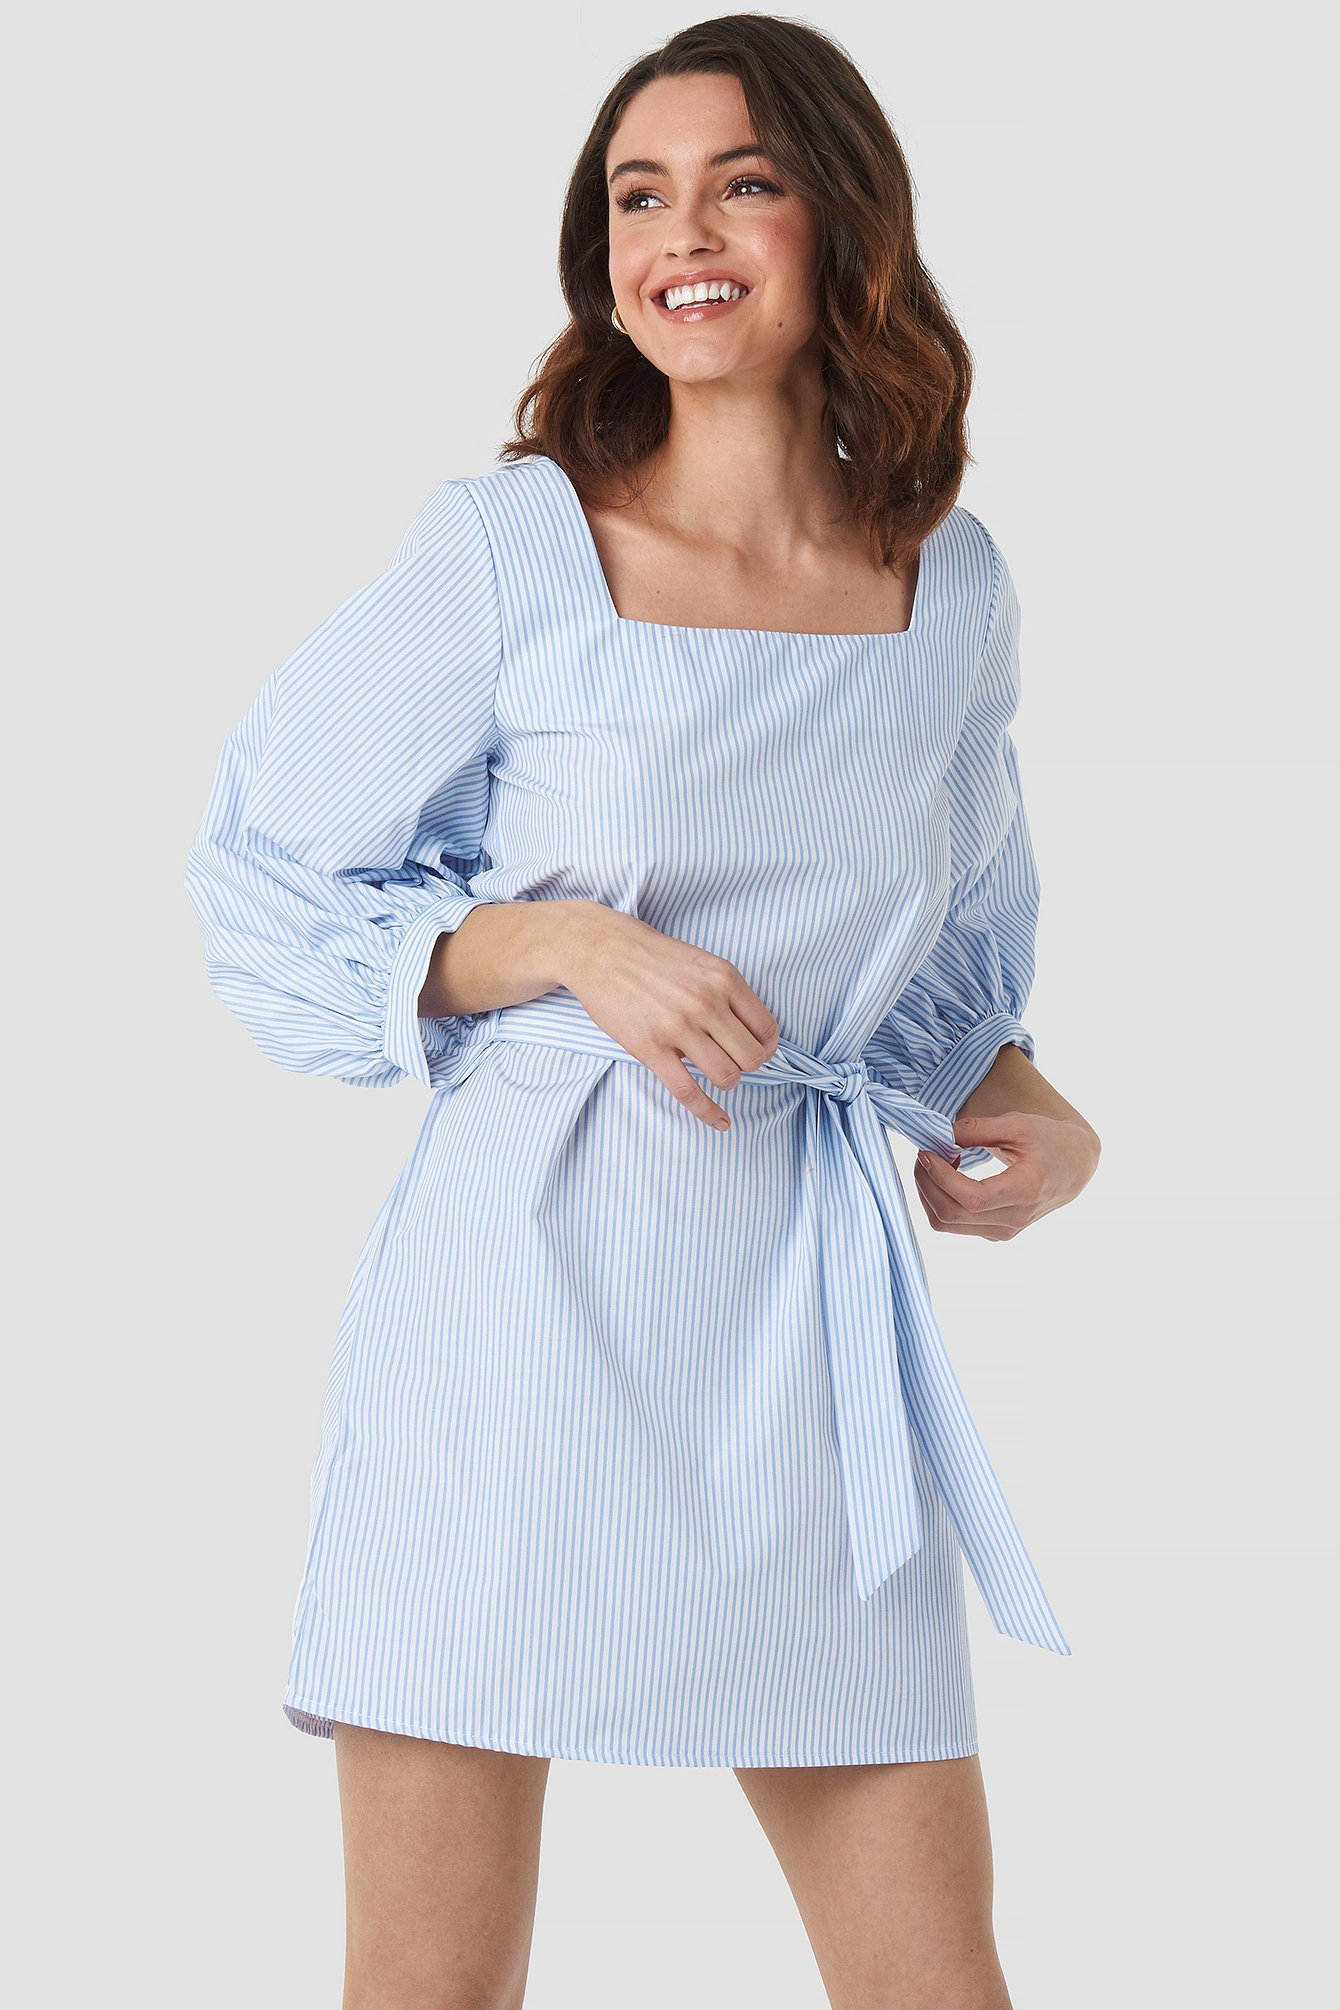 White/Blue Puff Sleeve Square Neck Tie Dress